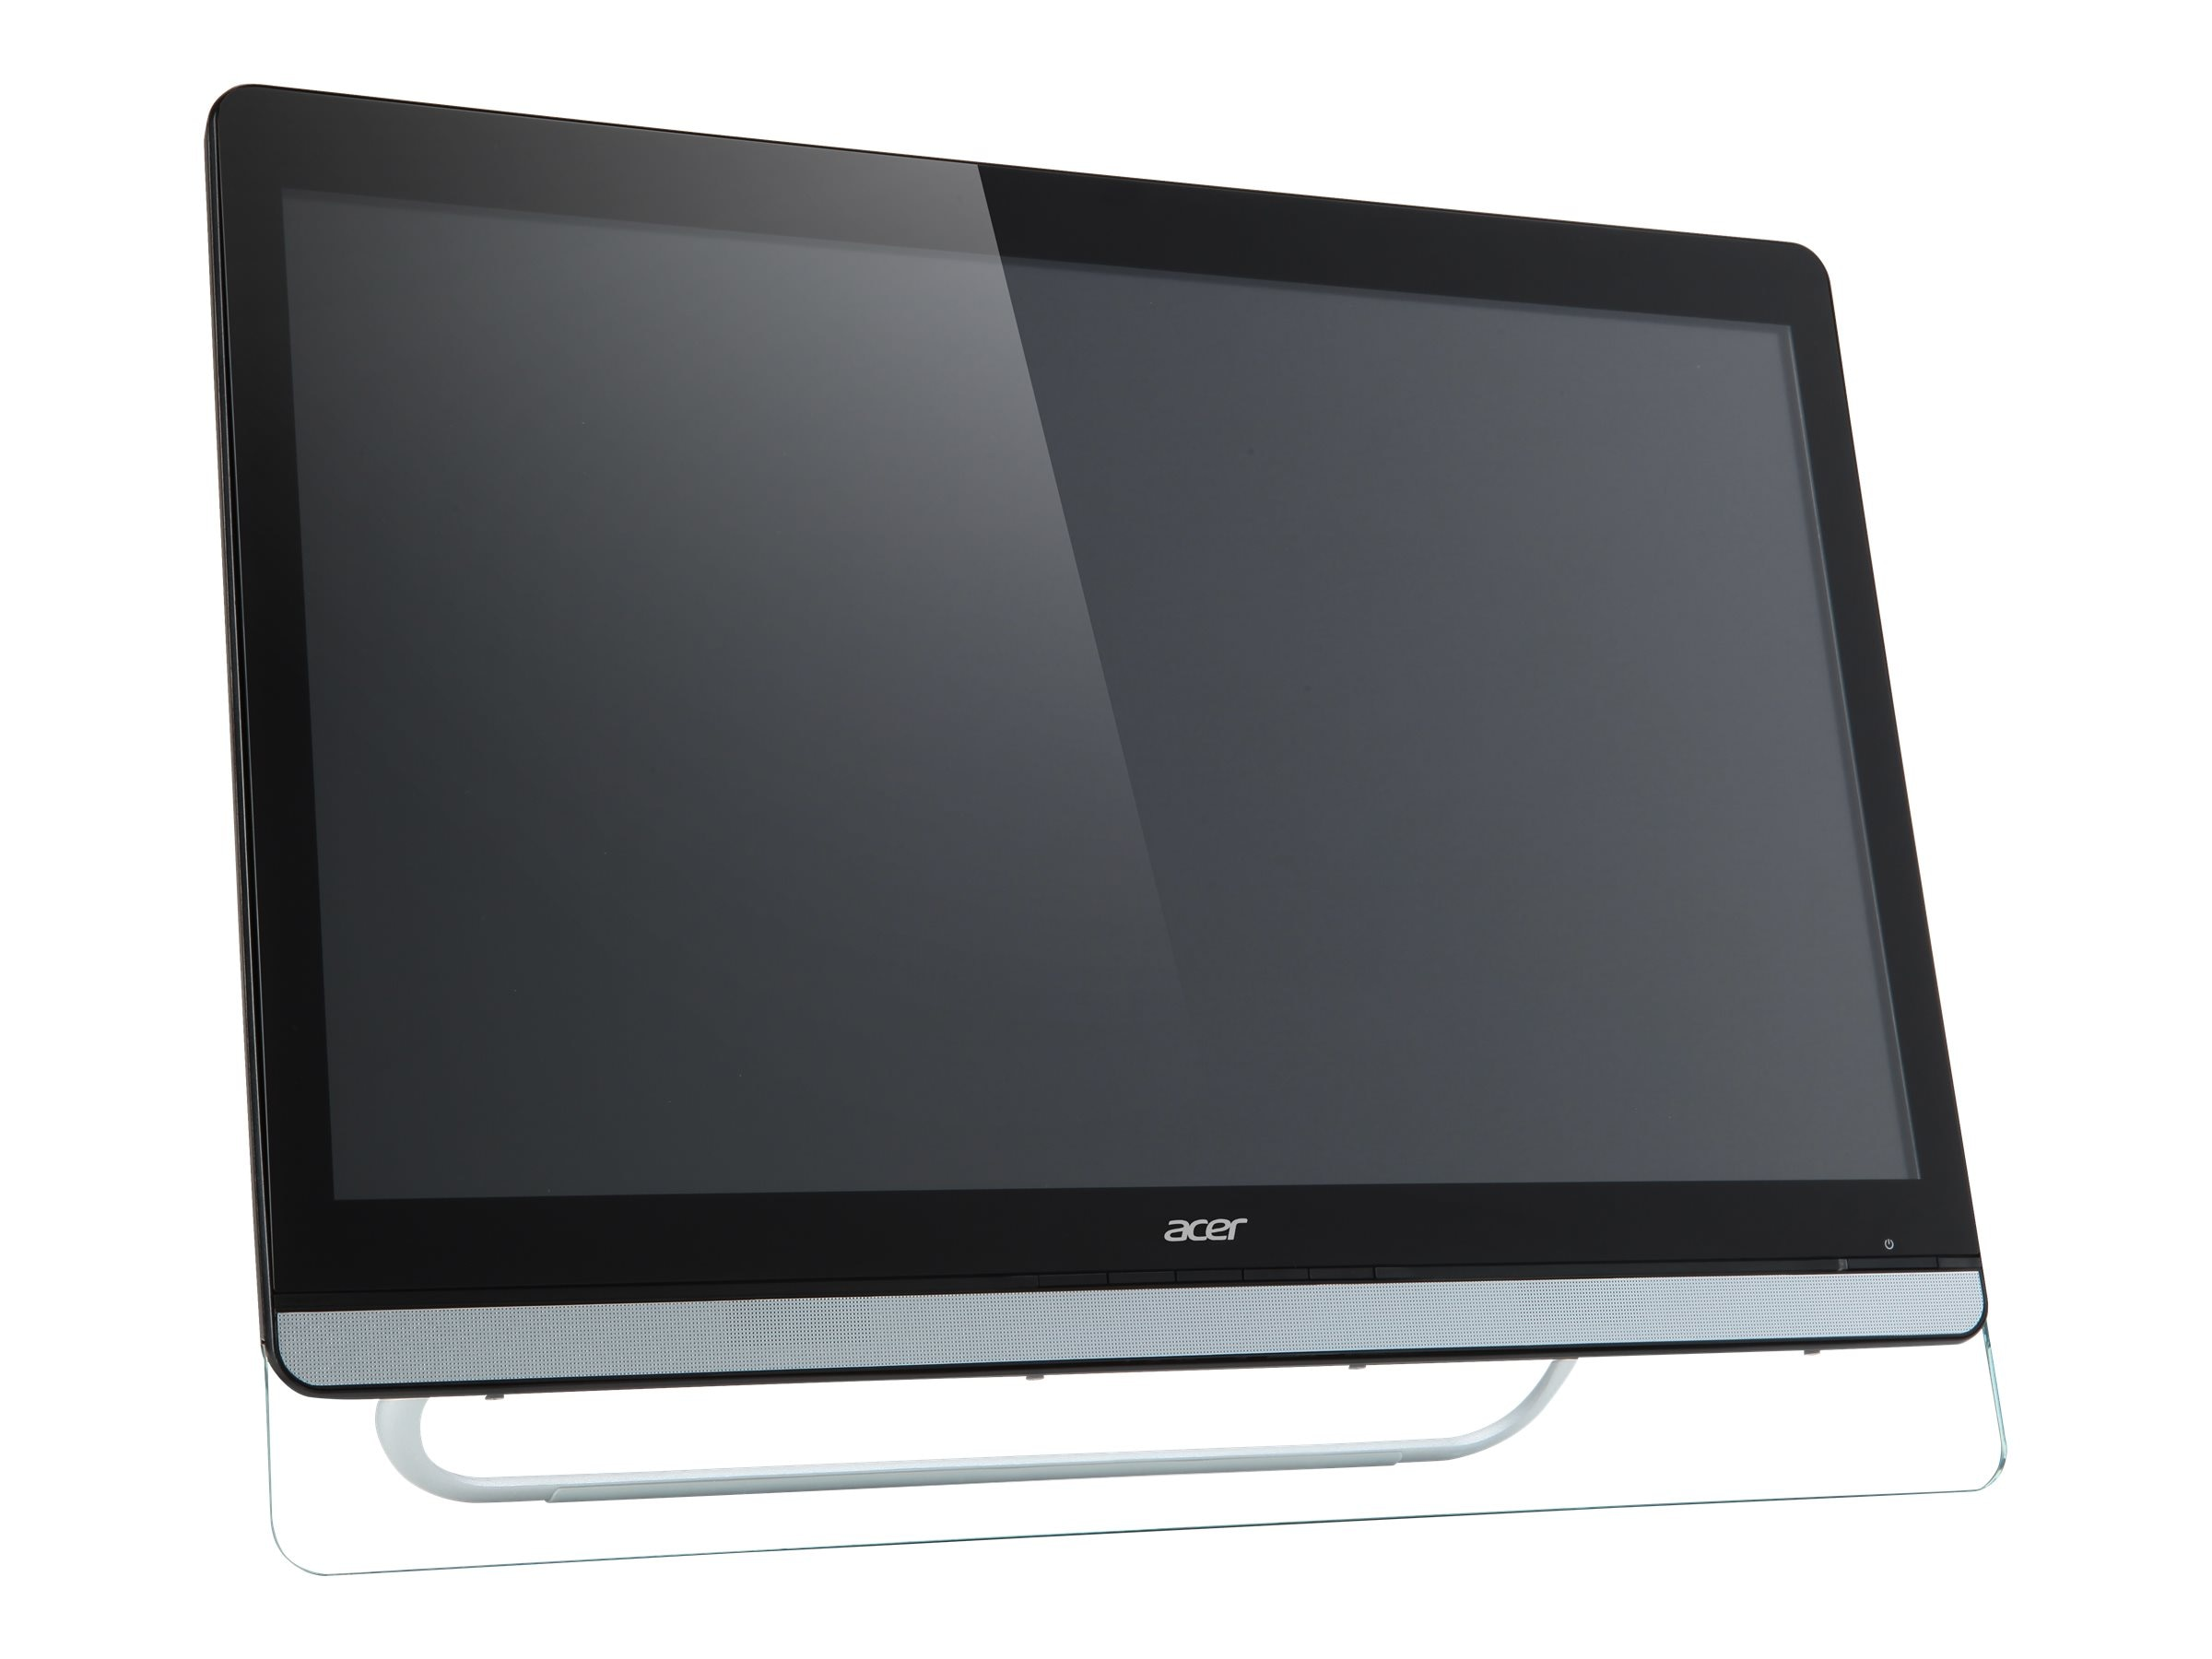 Acer 21.5 UT220HQL bmjz Full HD LED-LCD Touchscreen Display, Black, UM.WW0AA.004